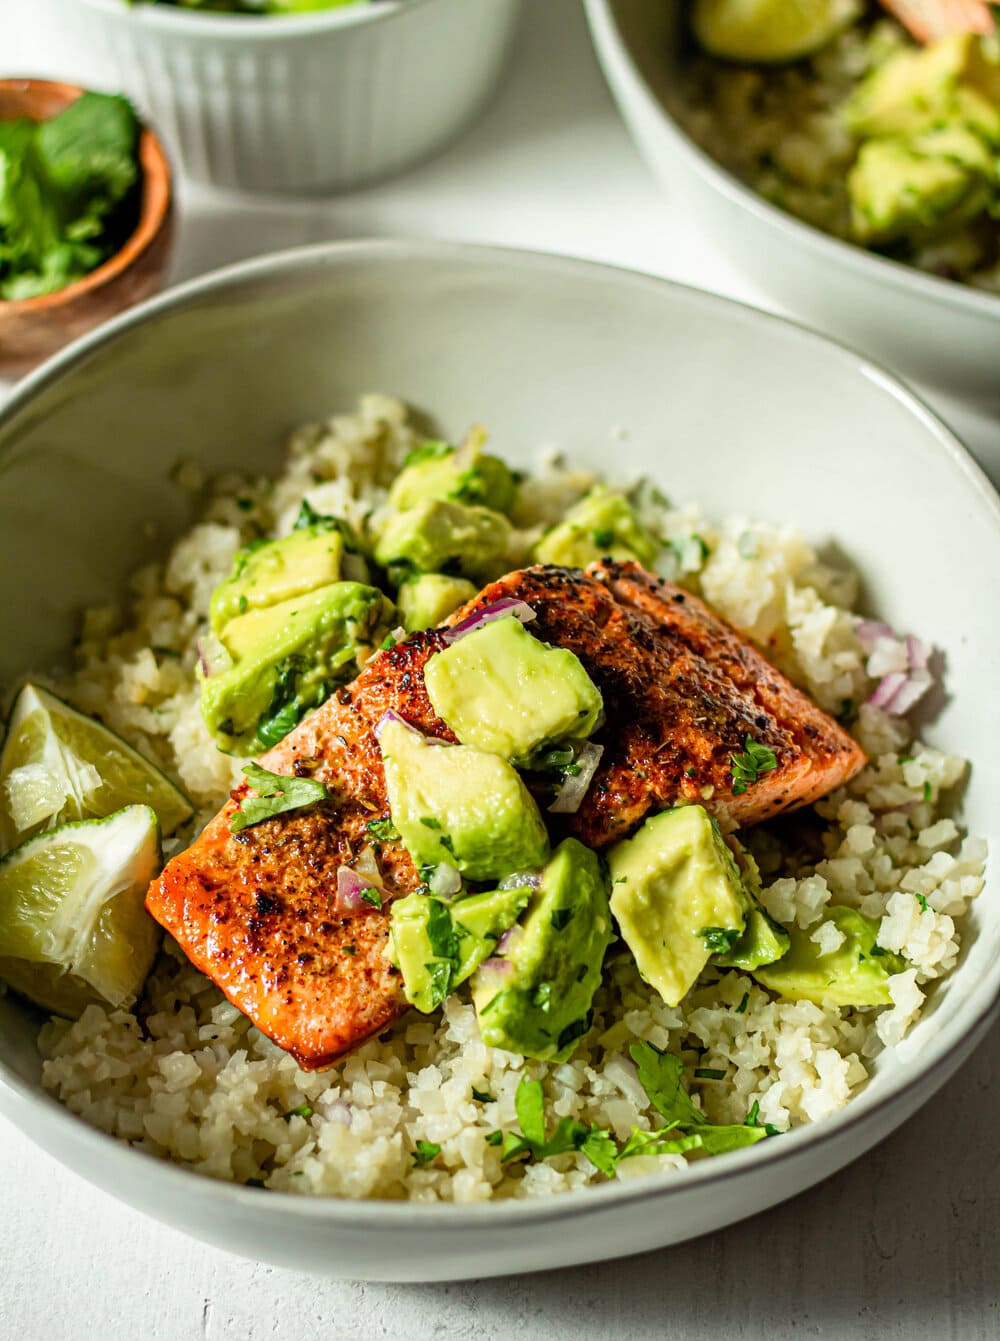 Crispy Pan Seared Salmon with Avocado Salsa